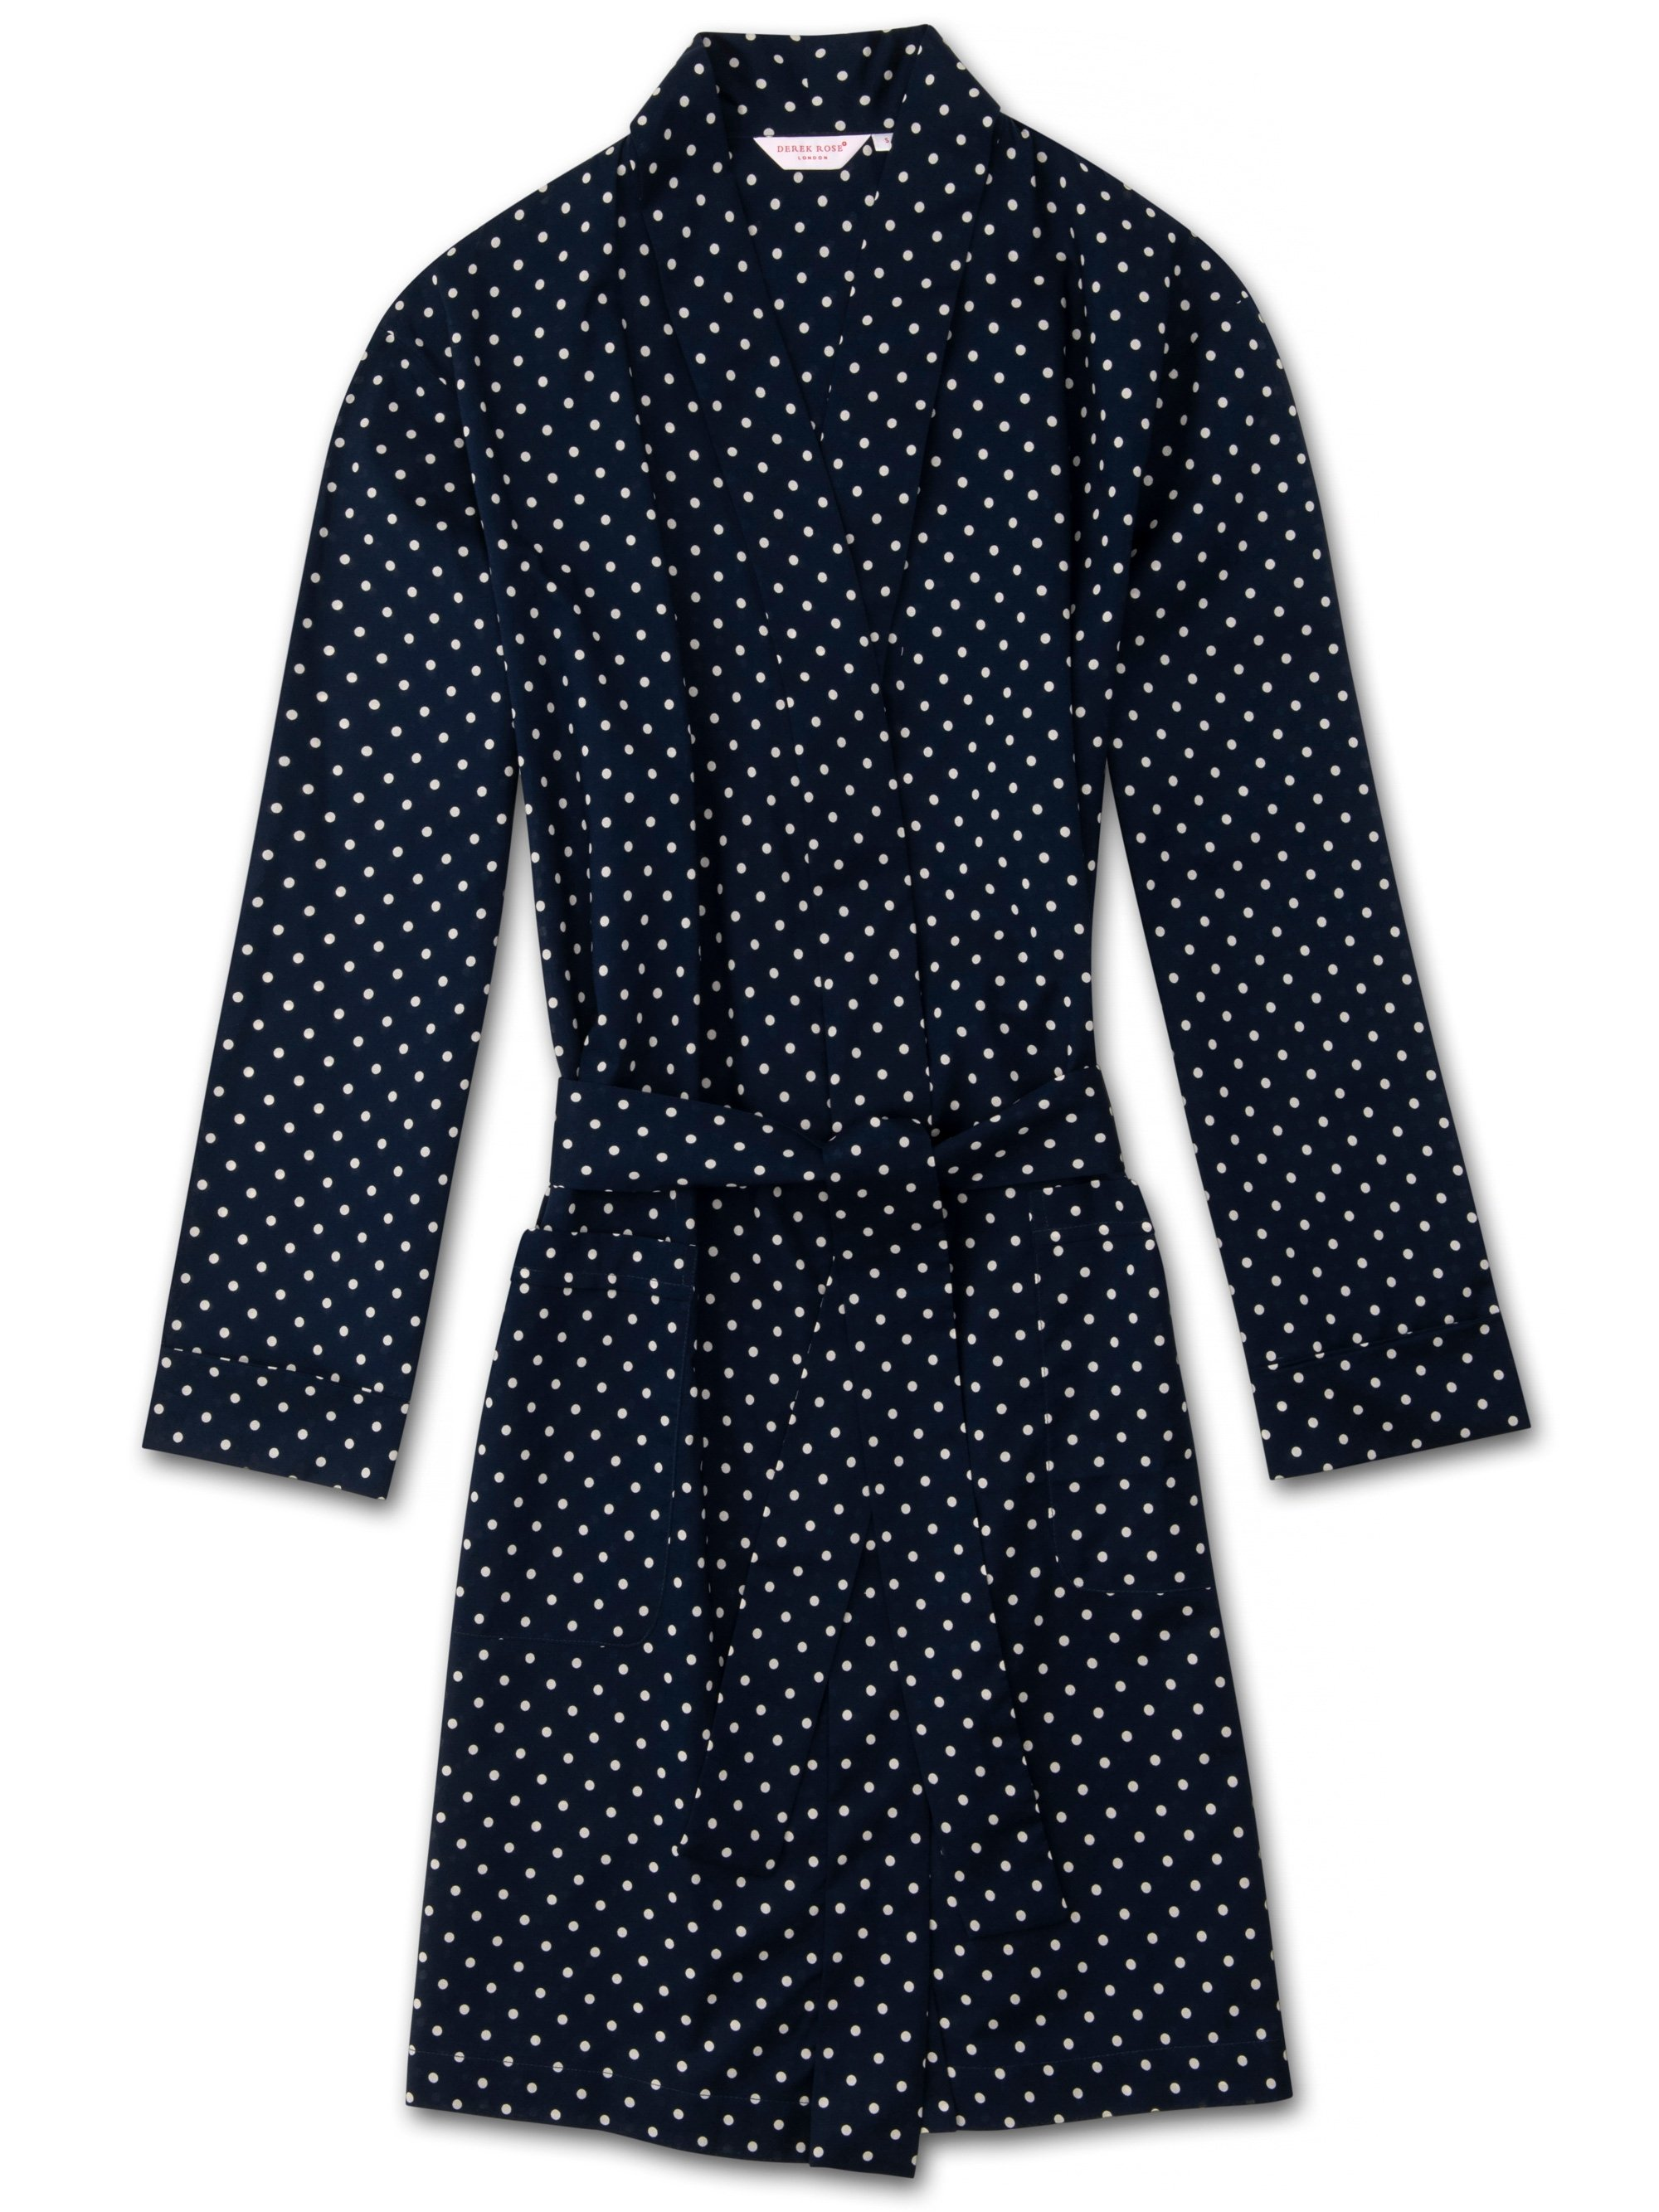 Women's Dressing Gown Plaza 60 Cotton Batiste Navy